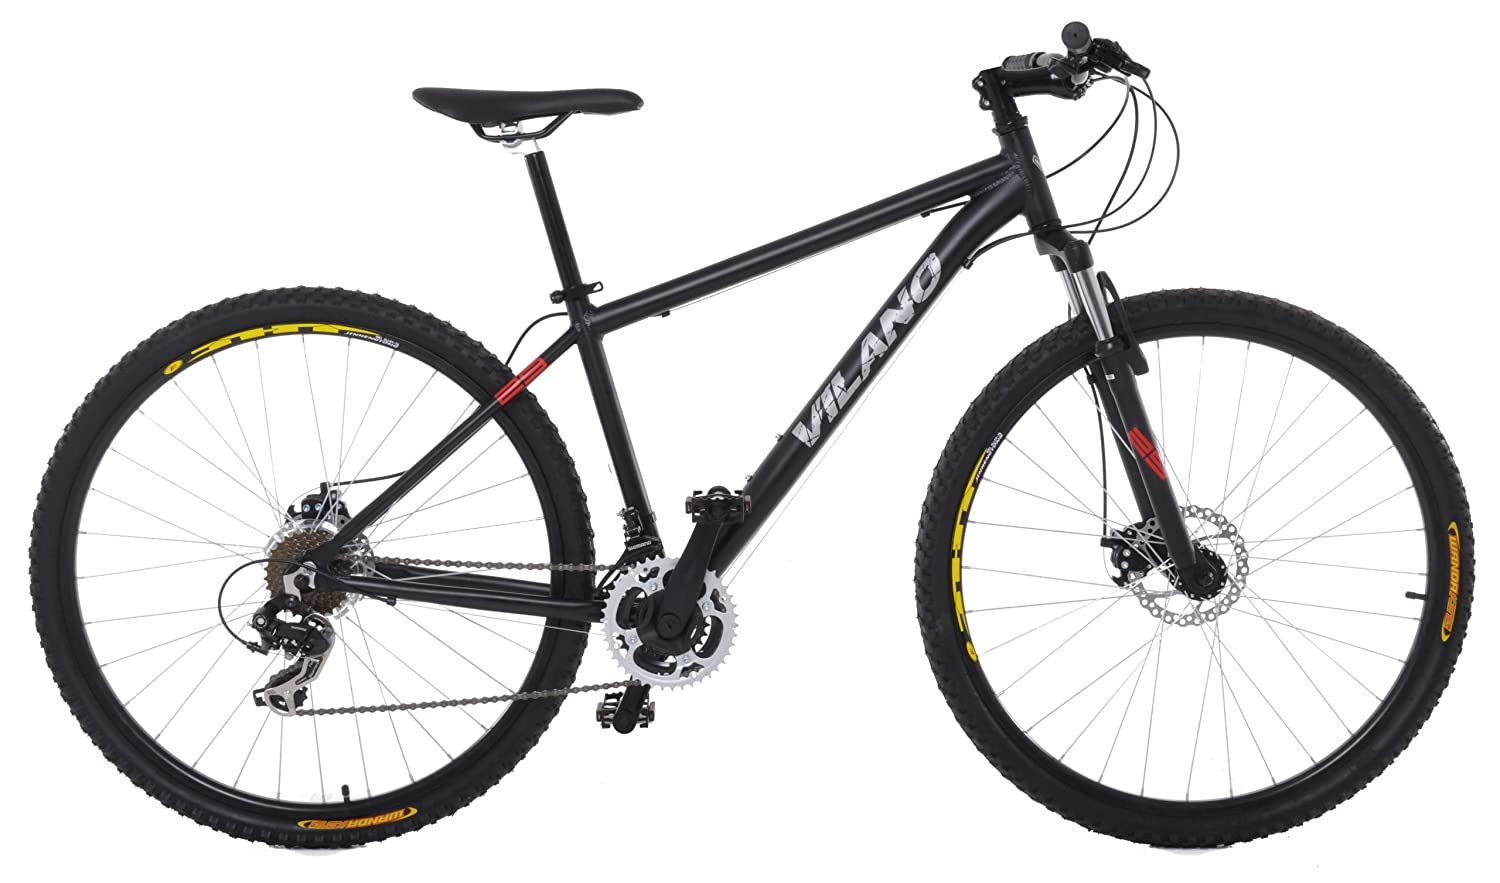 Vilano Blackjack 29er Mountain Bike with 29-Inch Wheels review 1